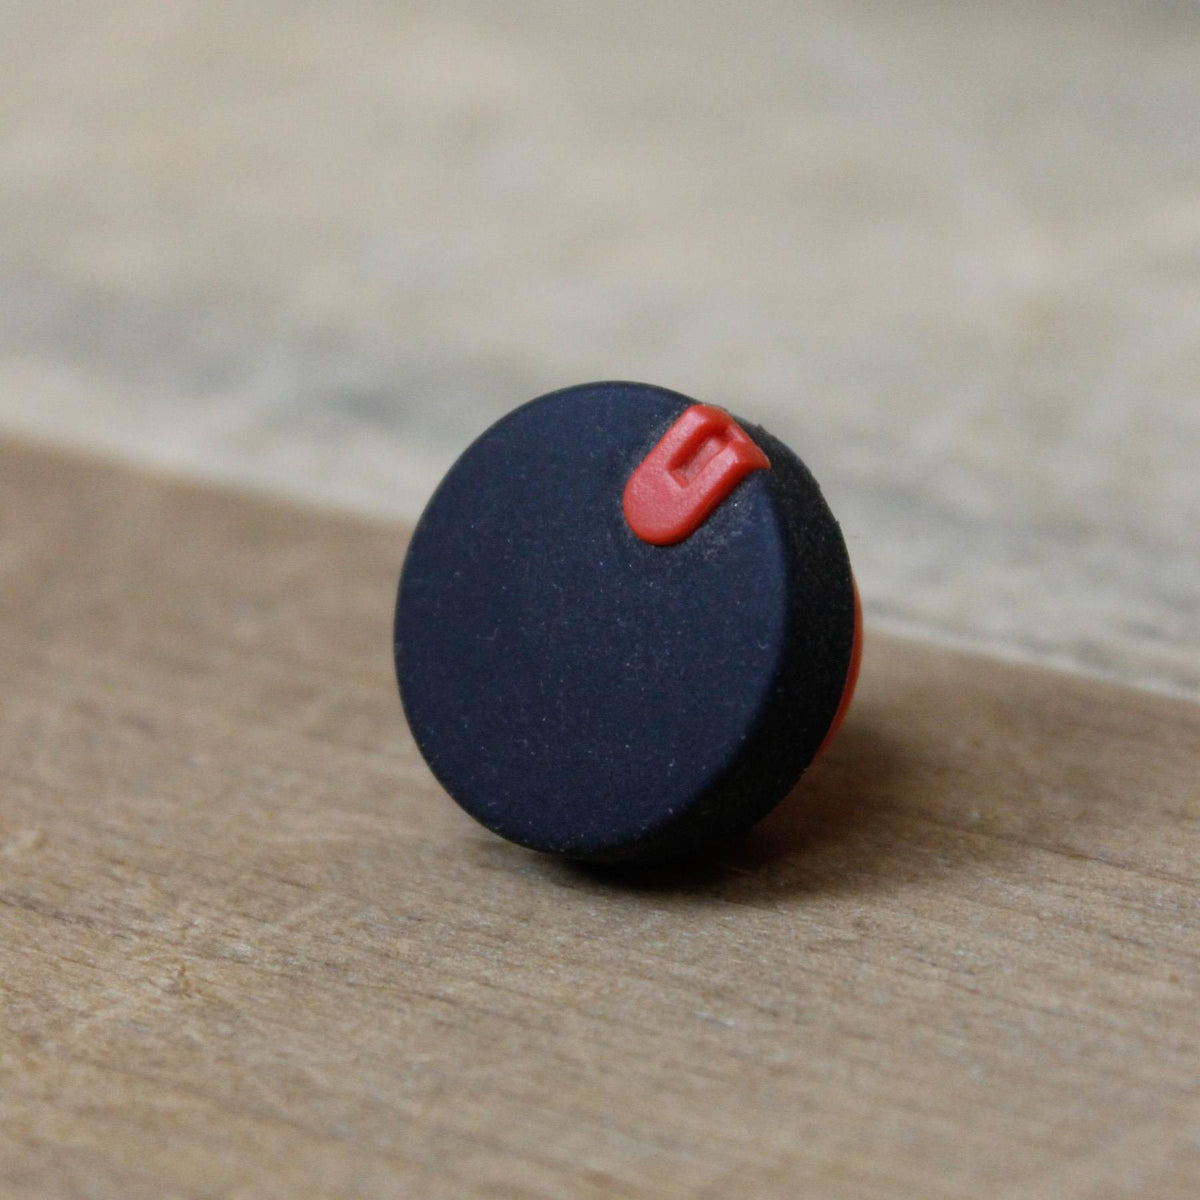 Red Knob for Tascam Porta Two